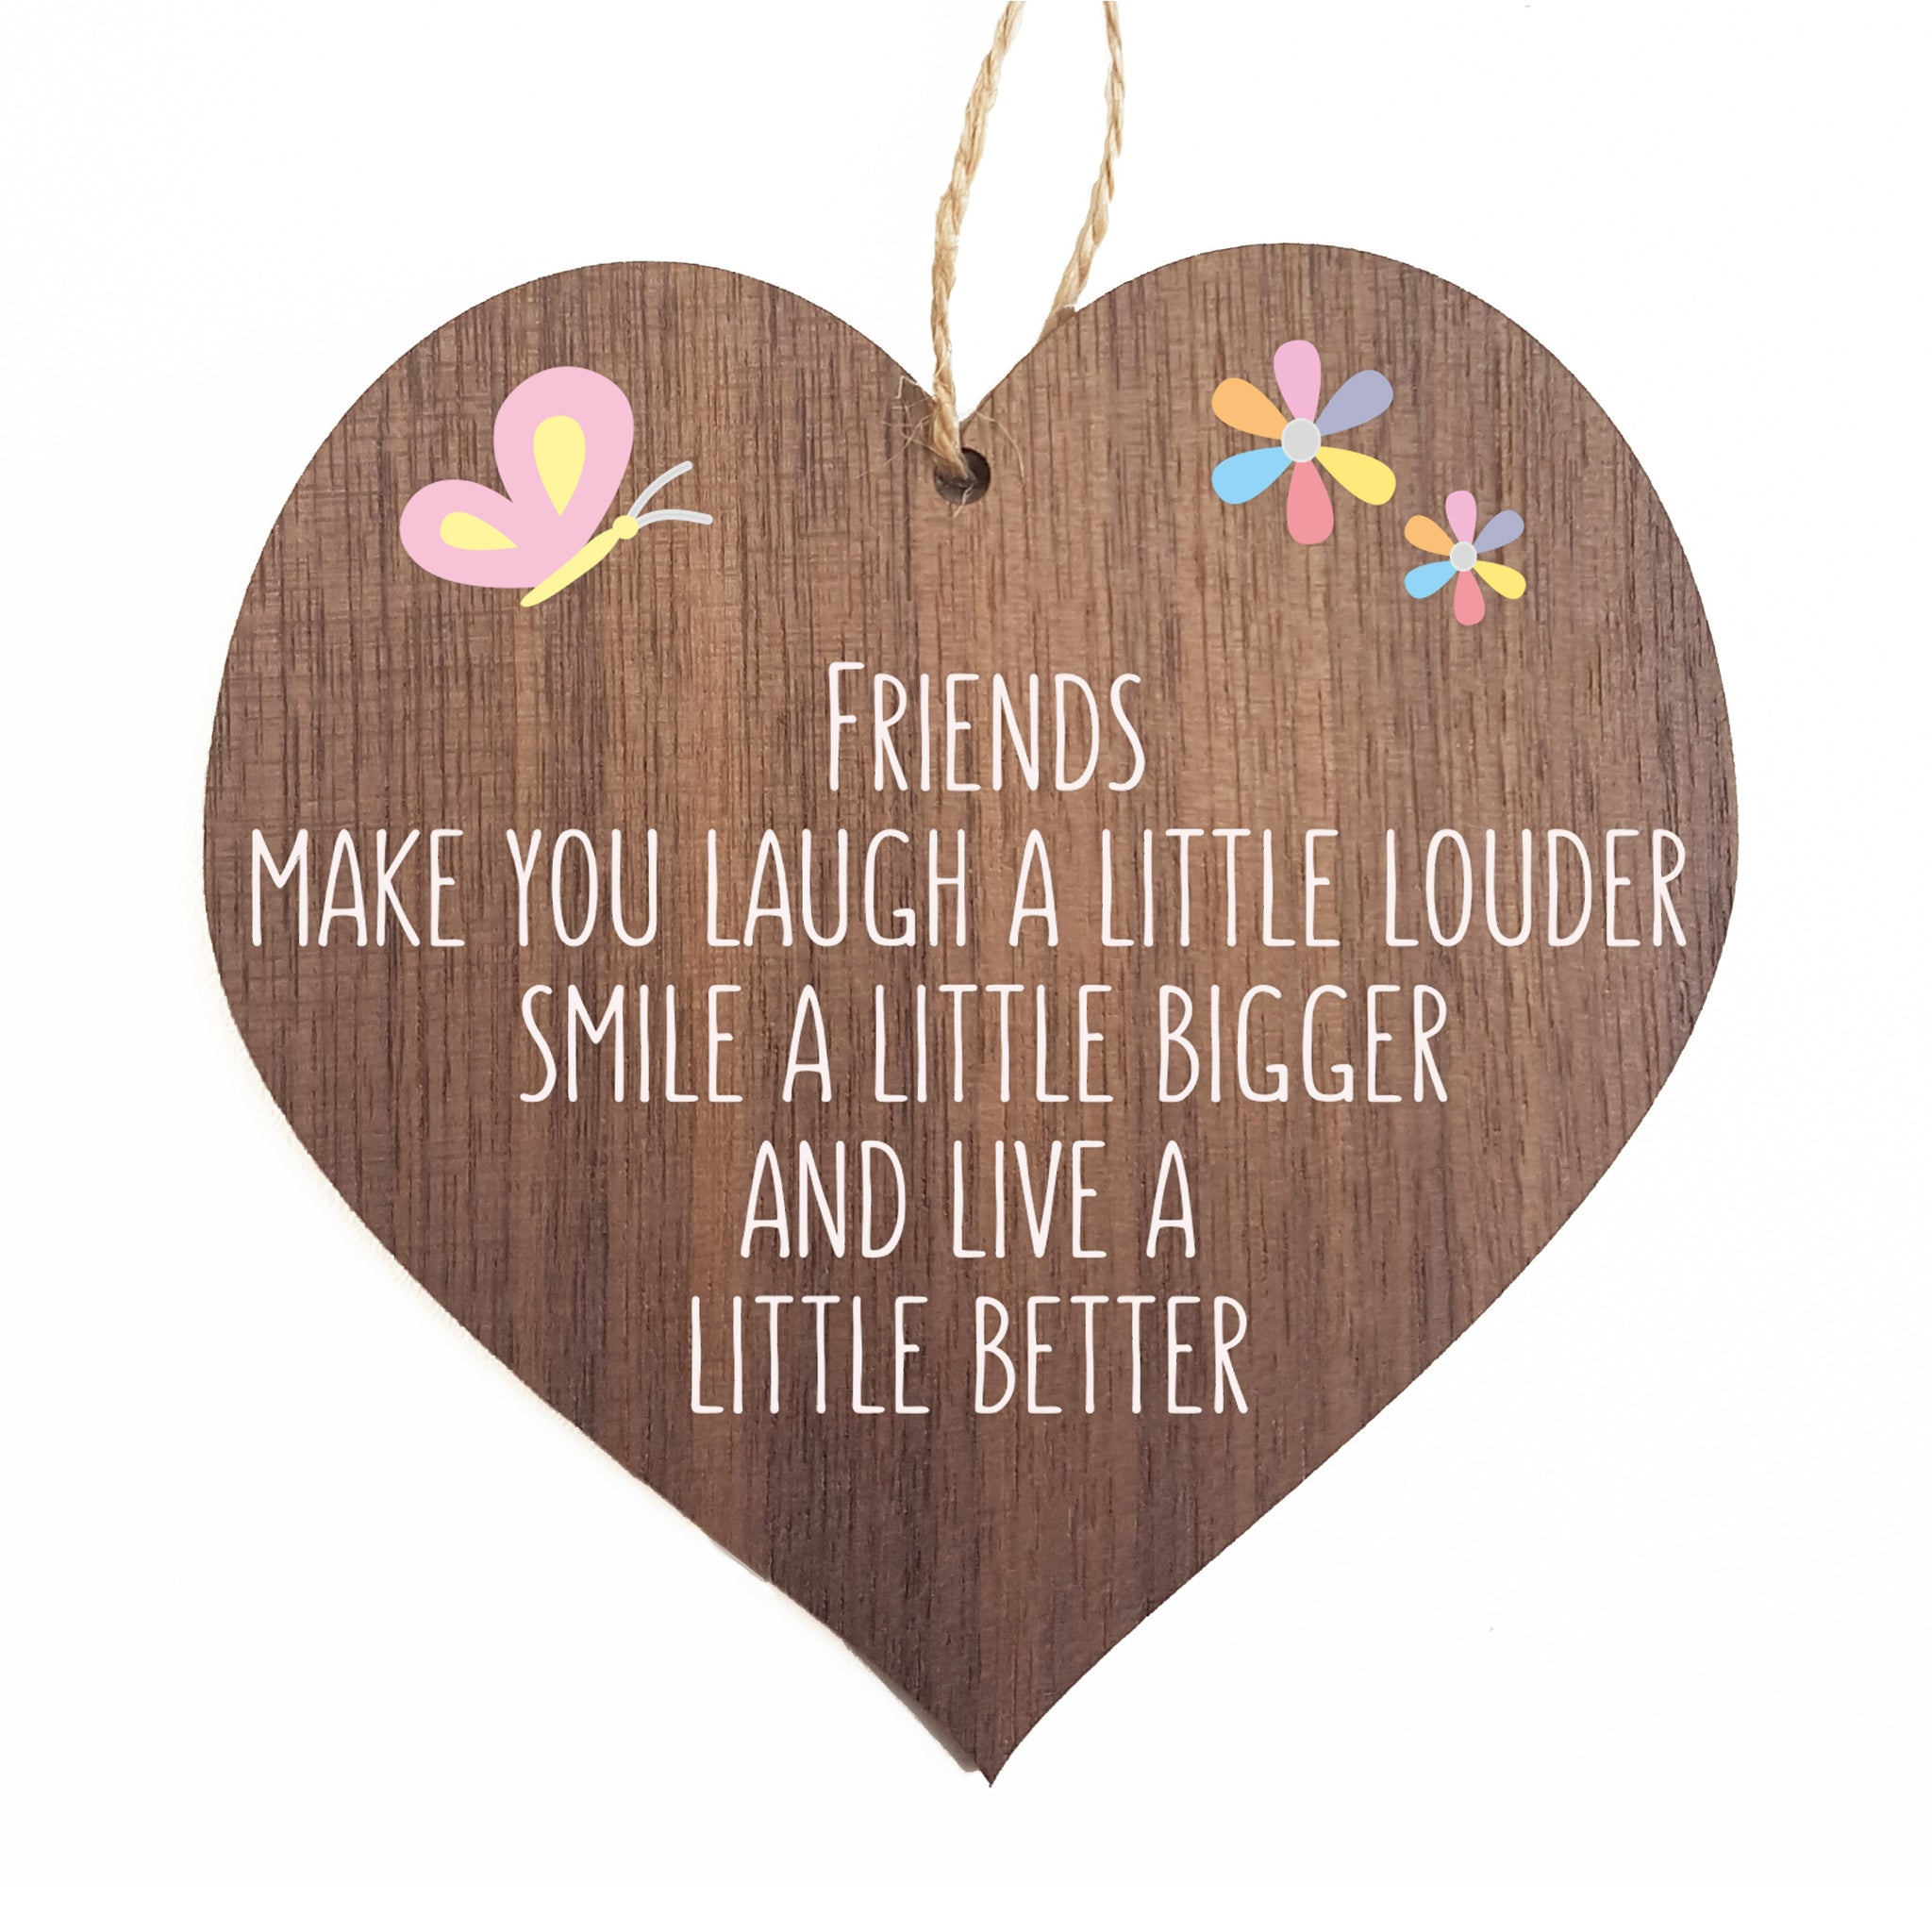 Friends make you laugh a little louder smile a little bigger and live a little better